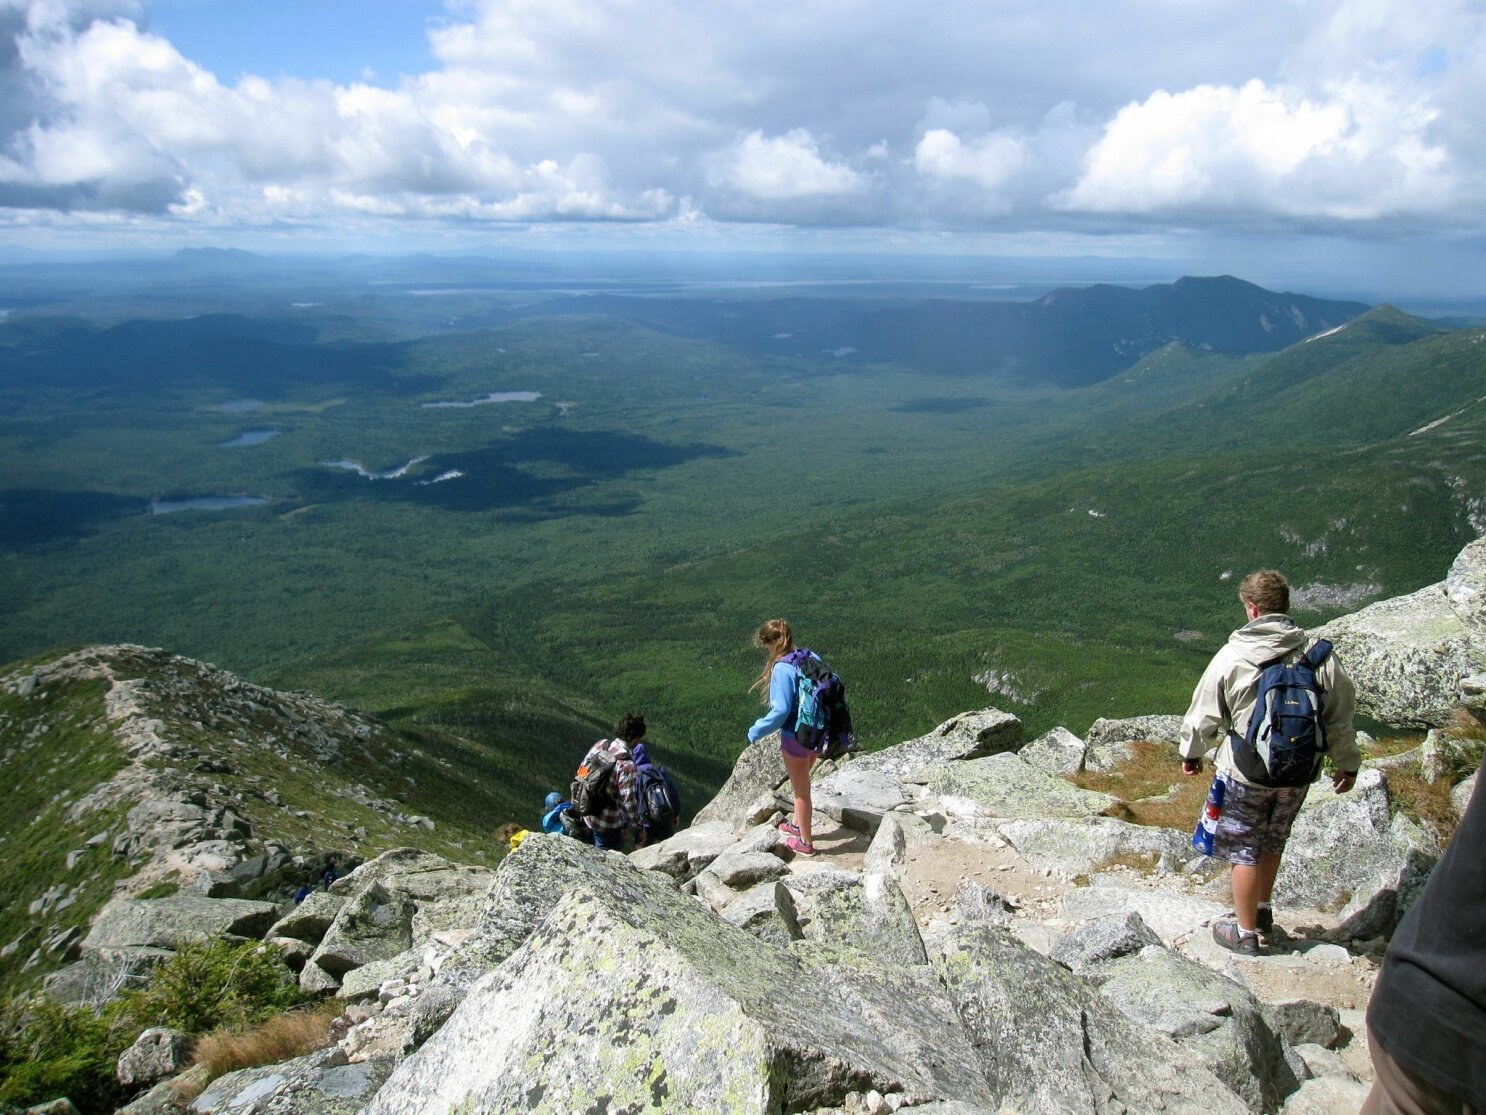 f8aba8463e279a Climbing Katahdin in Maine: This mountain's not for sissies - The San Diego  Union-Tribune